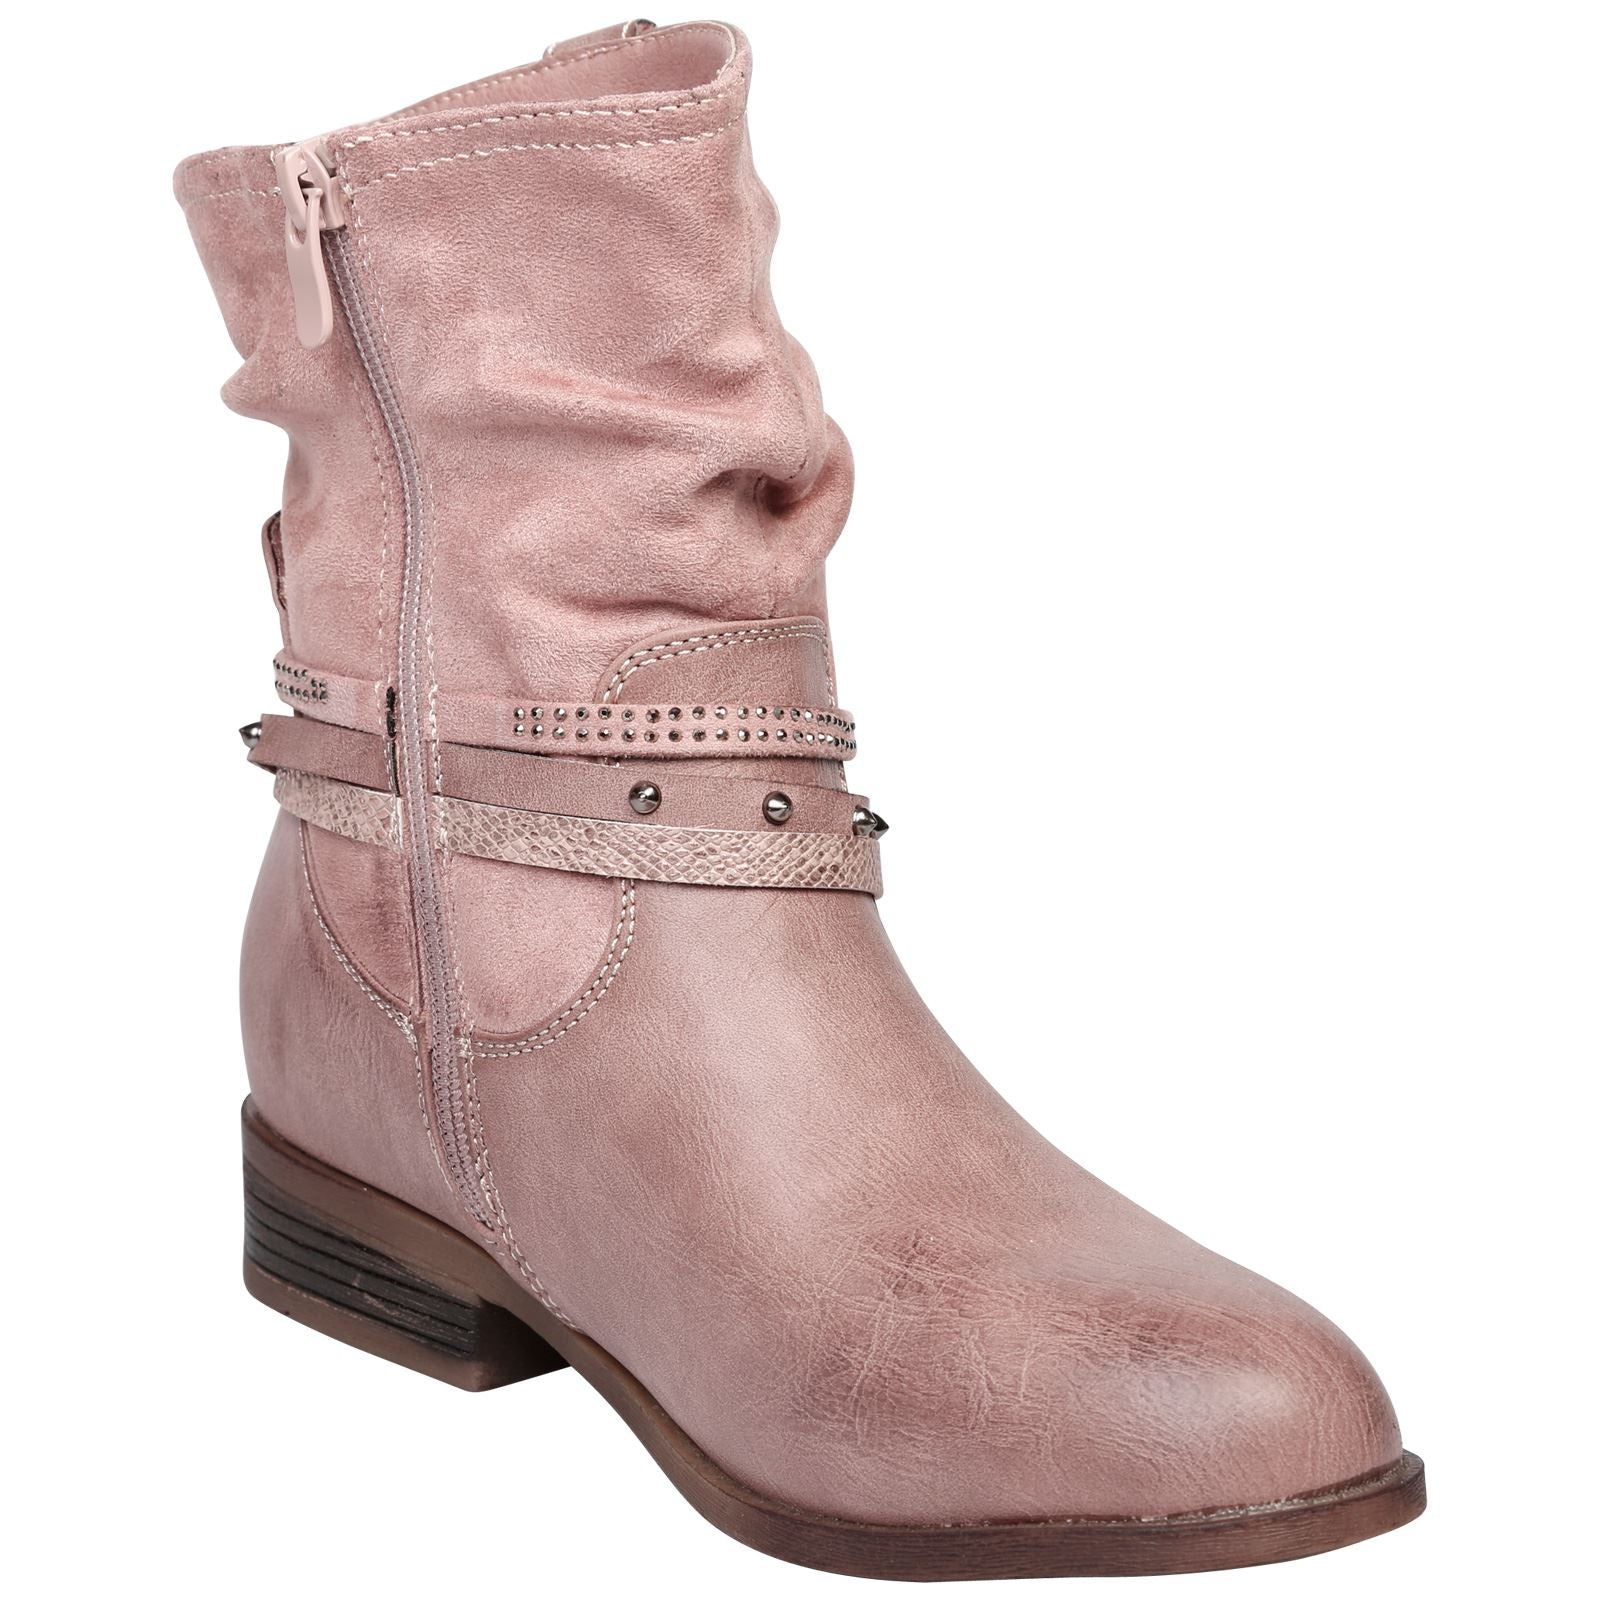 Dream Strappy Ankle Boots in Dusty Pink - Feet First Fashion